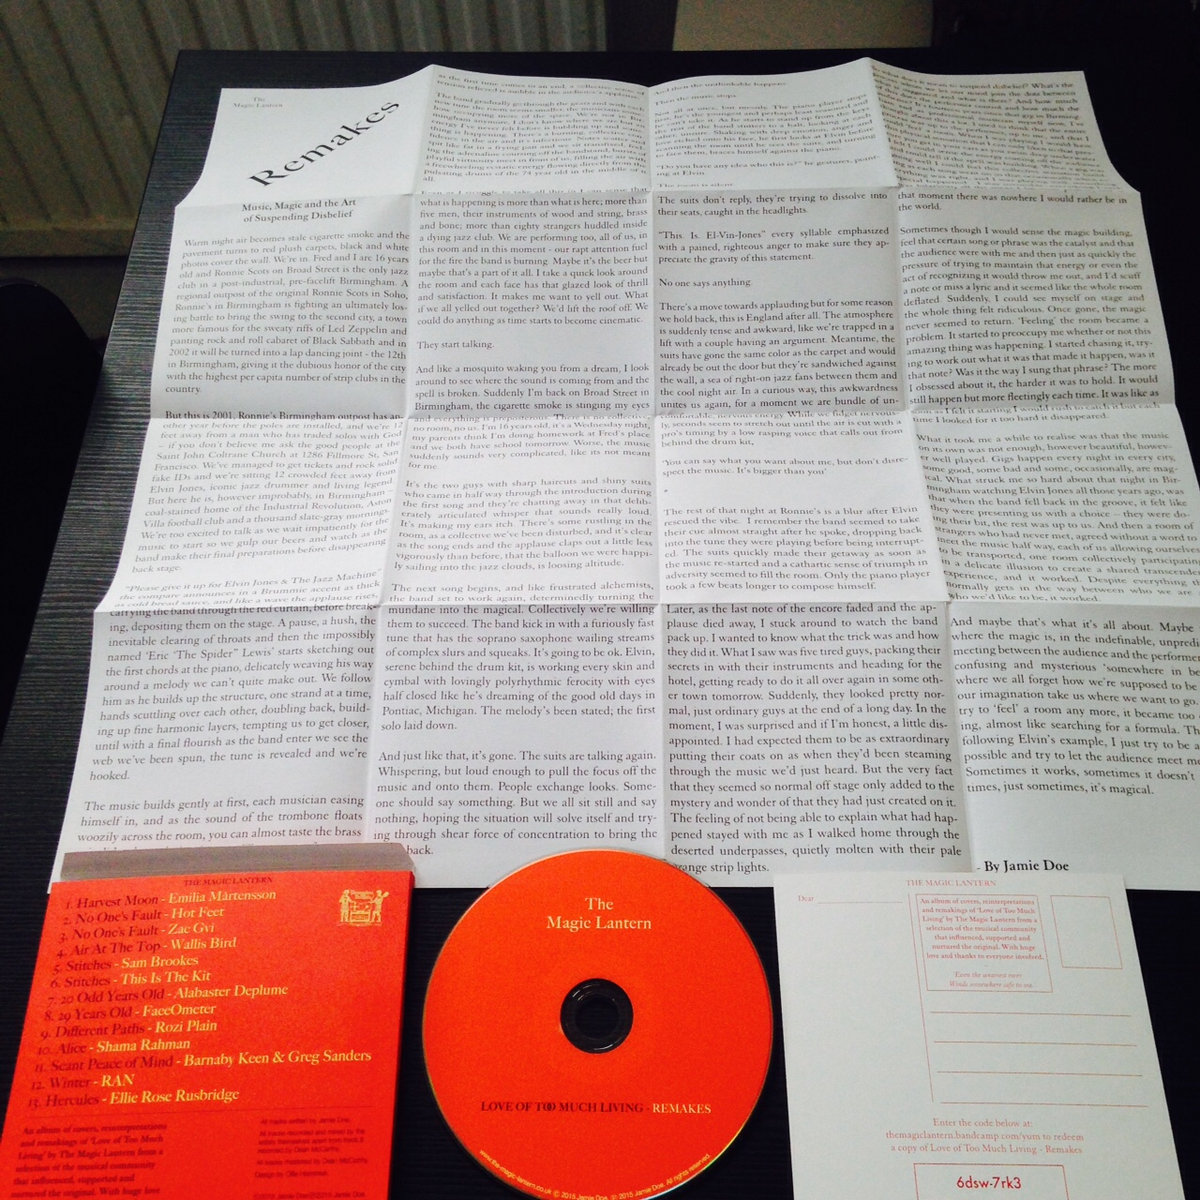 Scant Peace Of Mind Barnaby Keen  Greg Sanders Remake  The Magic  Comes In Lovely Printed Box With Cd Large Full Colour Poster With Original  Essay And Download Postcard Containing Free Download Of The Album English Essays For Students also Dkf Writing Services  Business Plan Writers For Hire